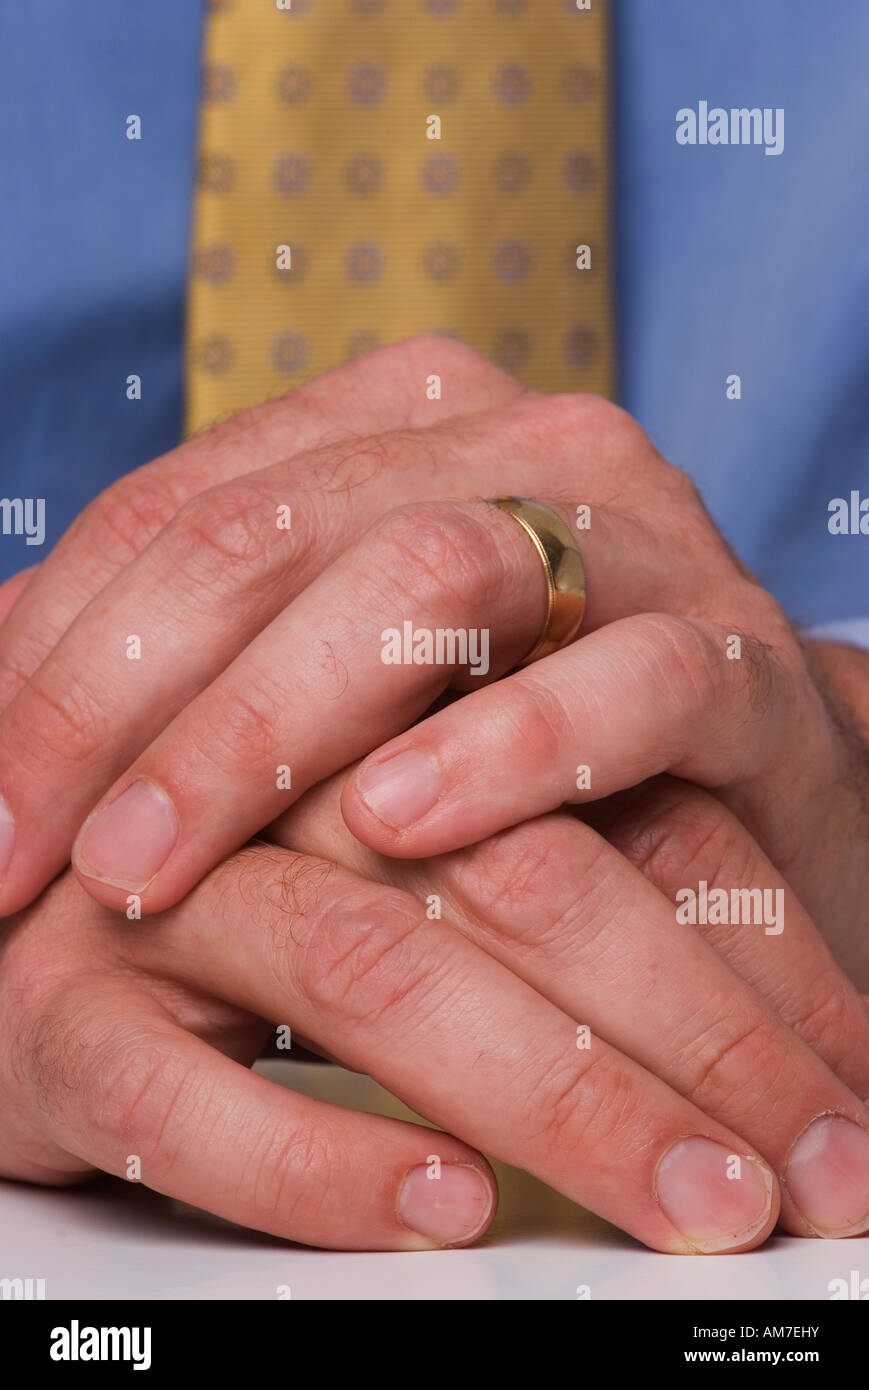 Mans Hand With Wedding Ring On Finger Stock Photos & Mans Hand With ...